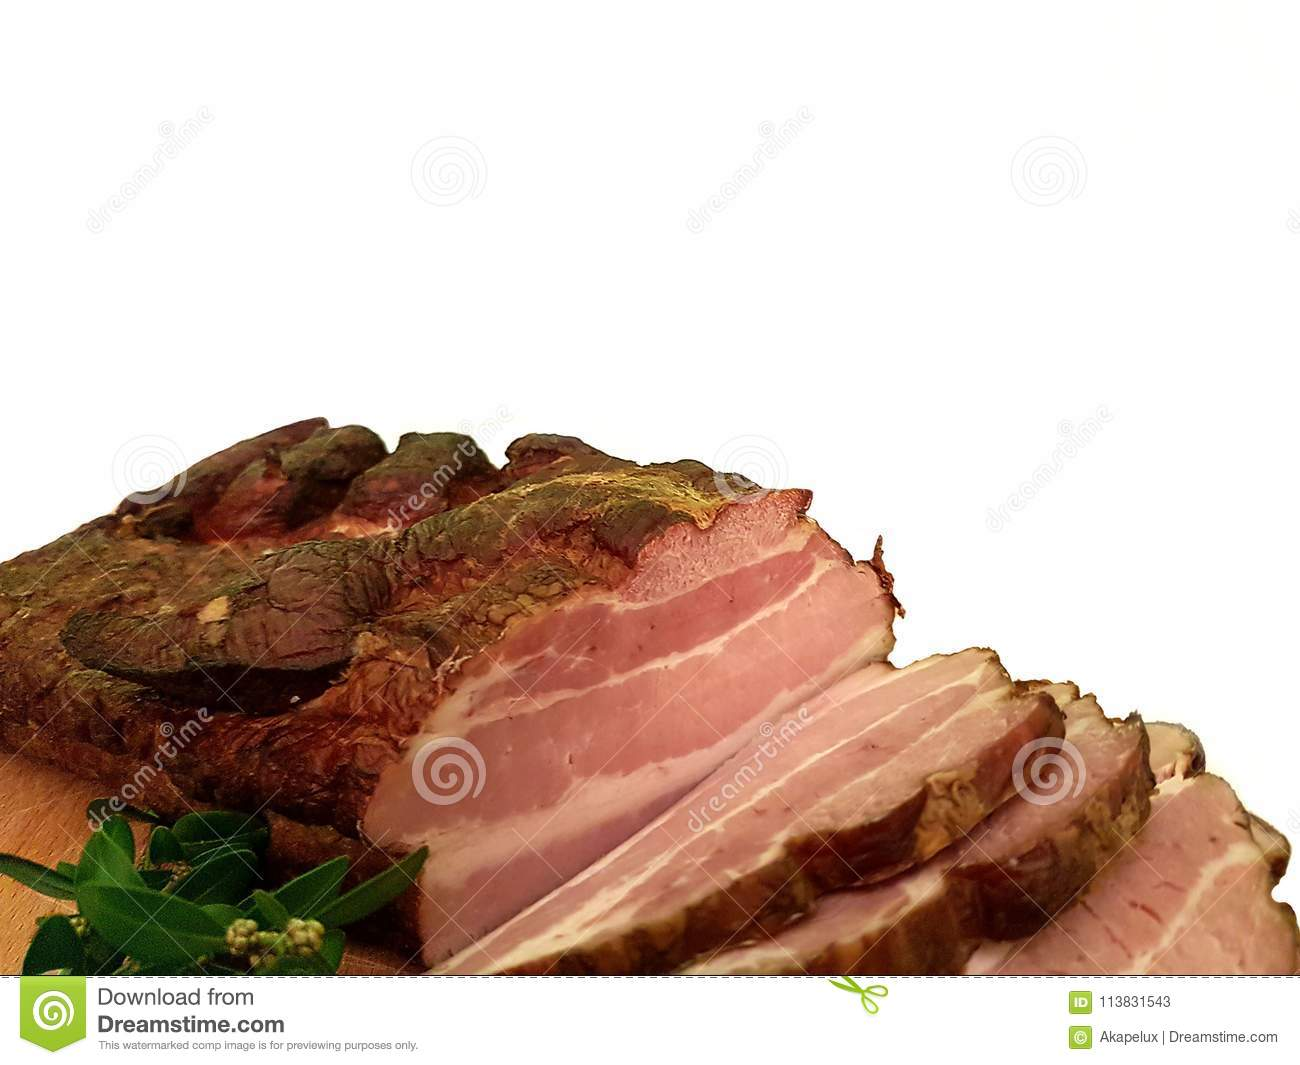 A piece of smoked sponge chopped on a wooden board decorated with a green plant. Fat high-protein high-calorie food. Taste for rea